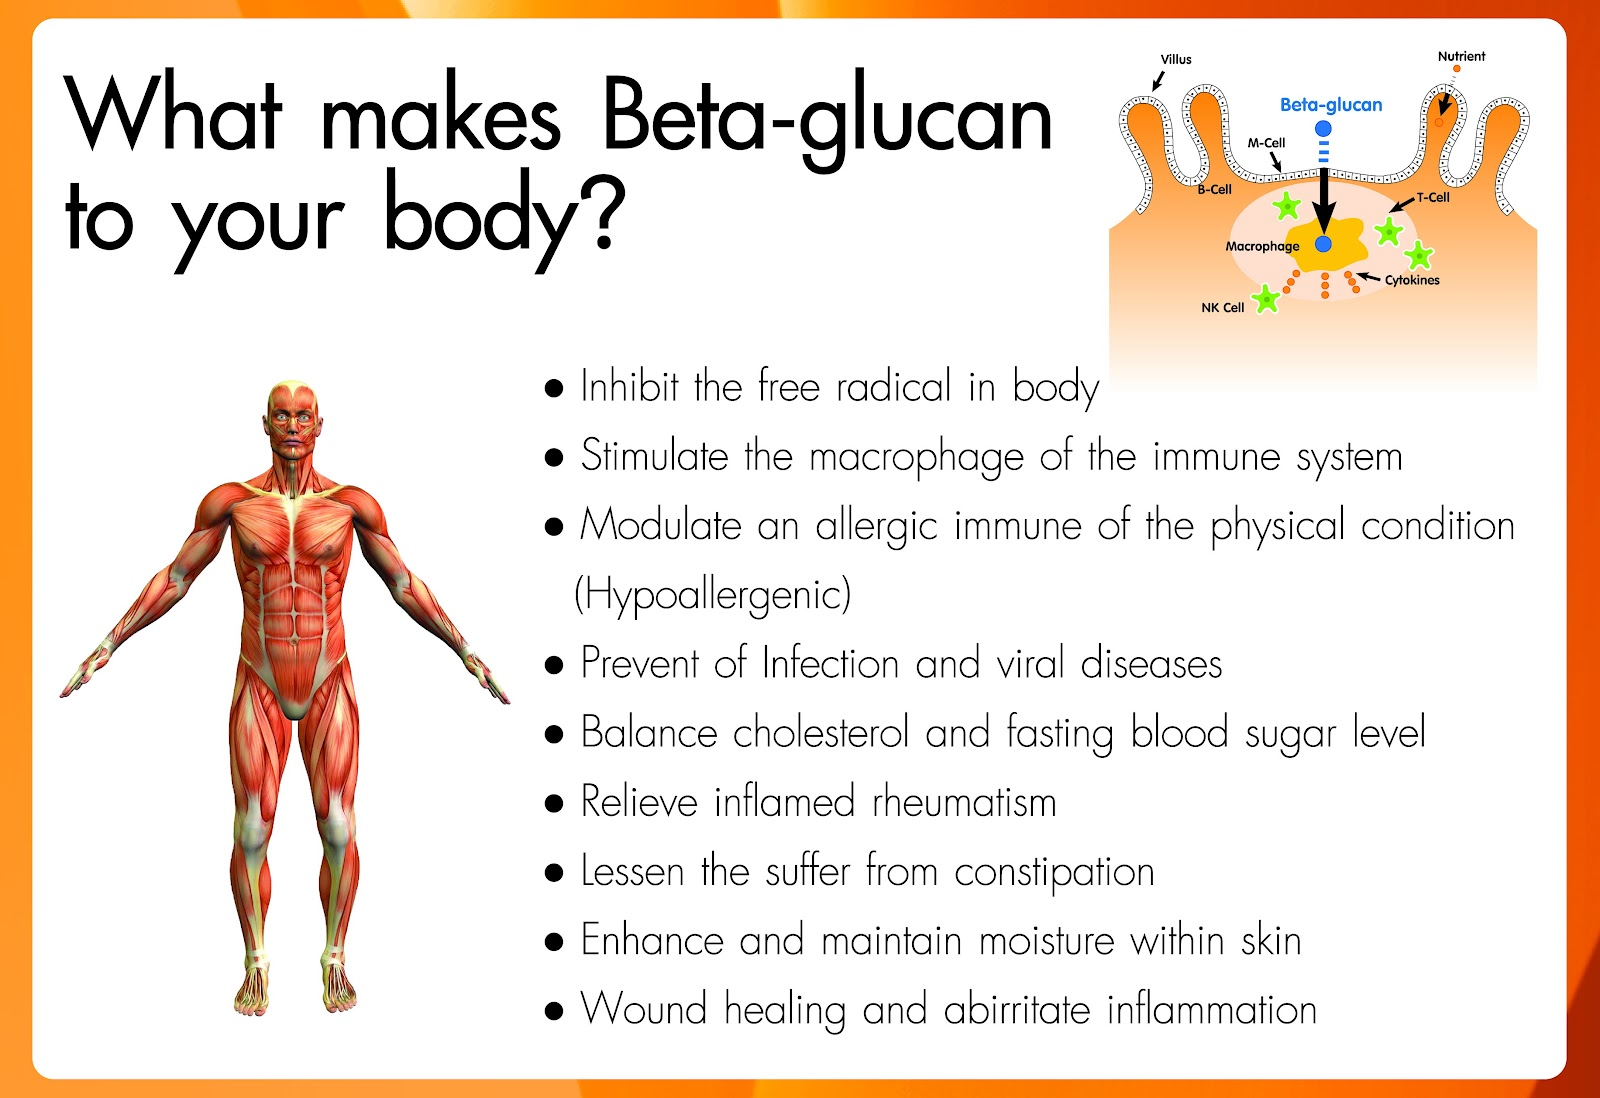 Unwanted side effects: Oat beta-glucan beats out plant sterols in cholesterol-lowering study